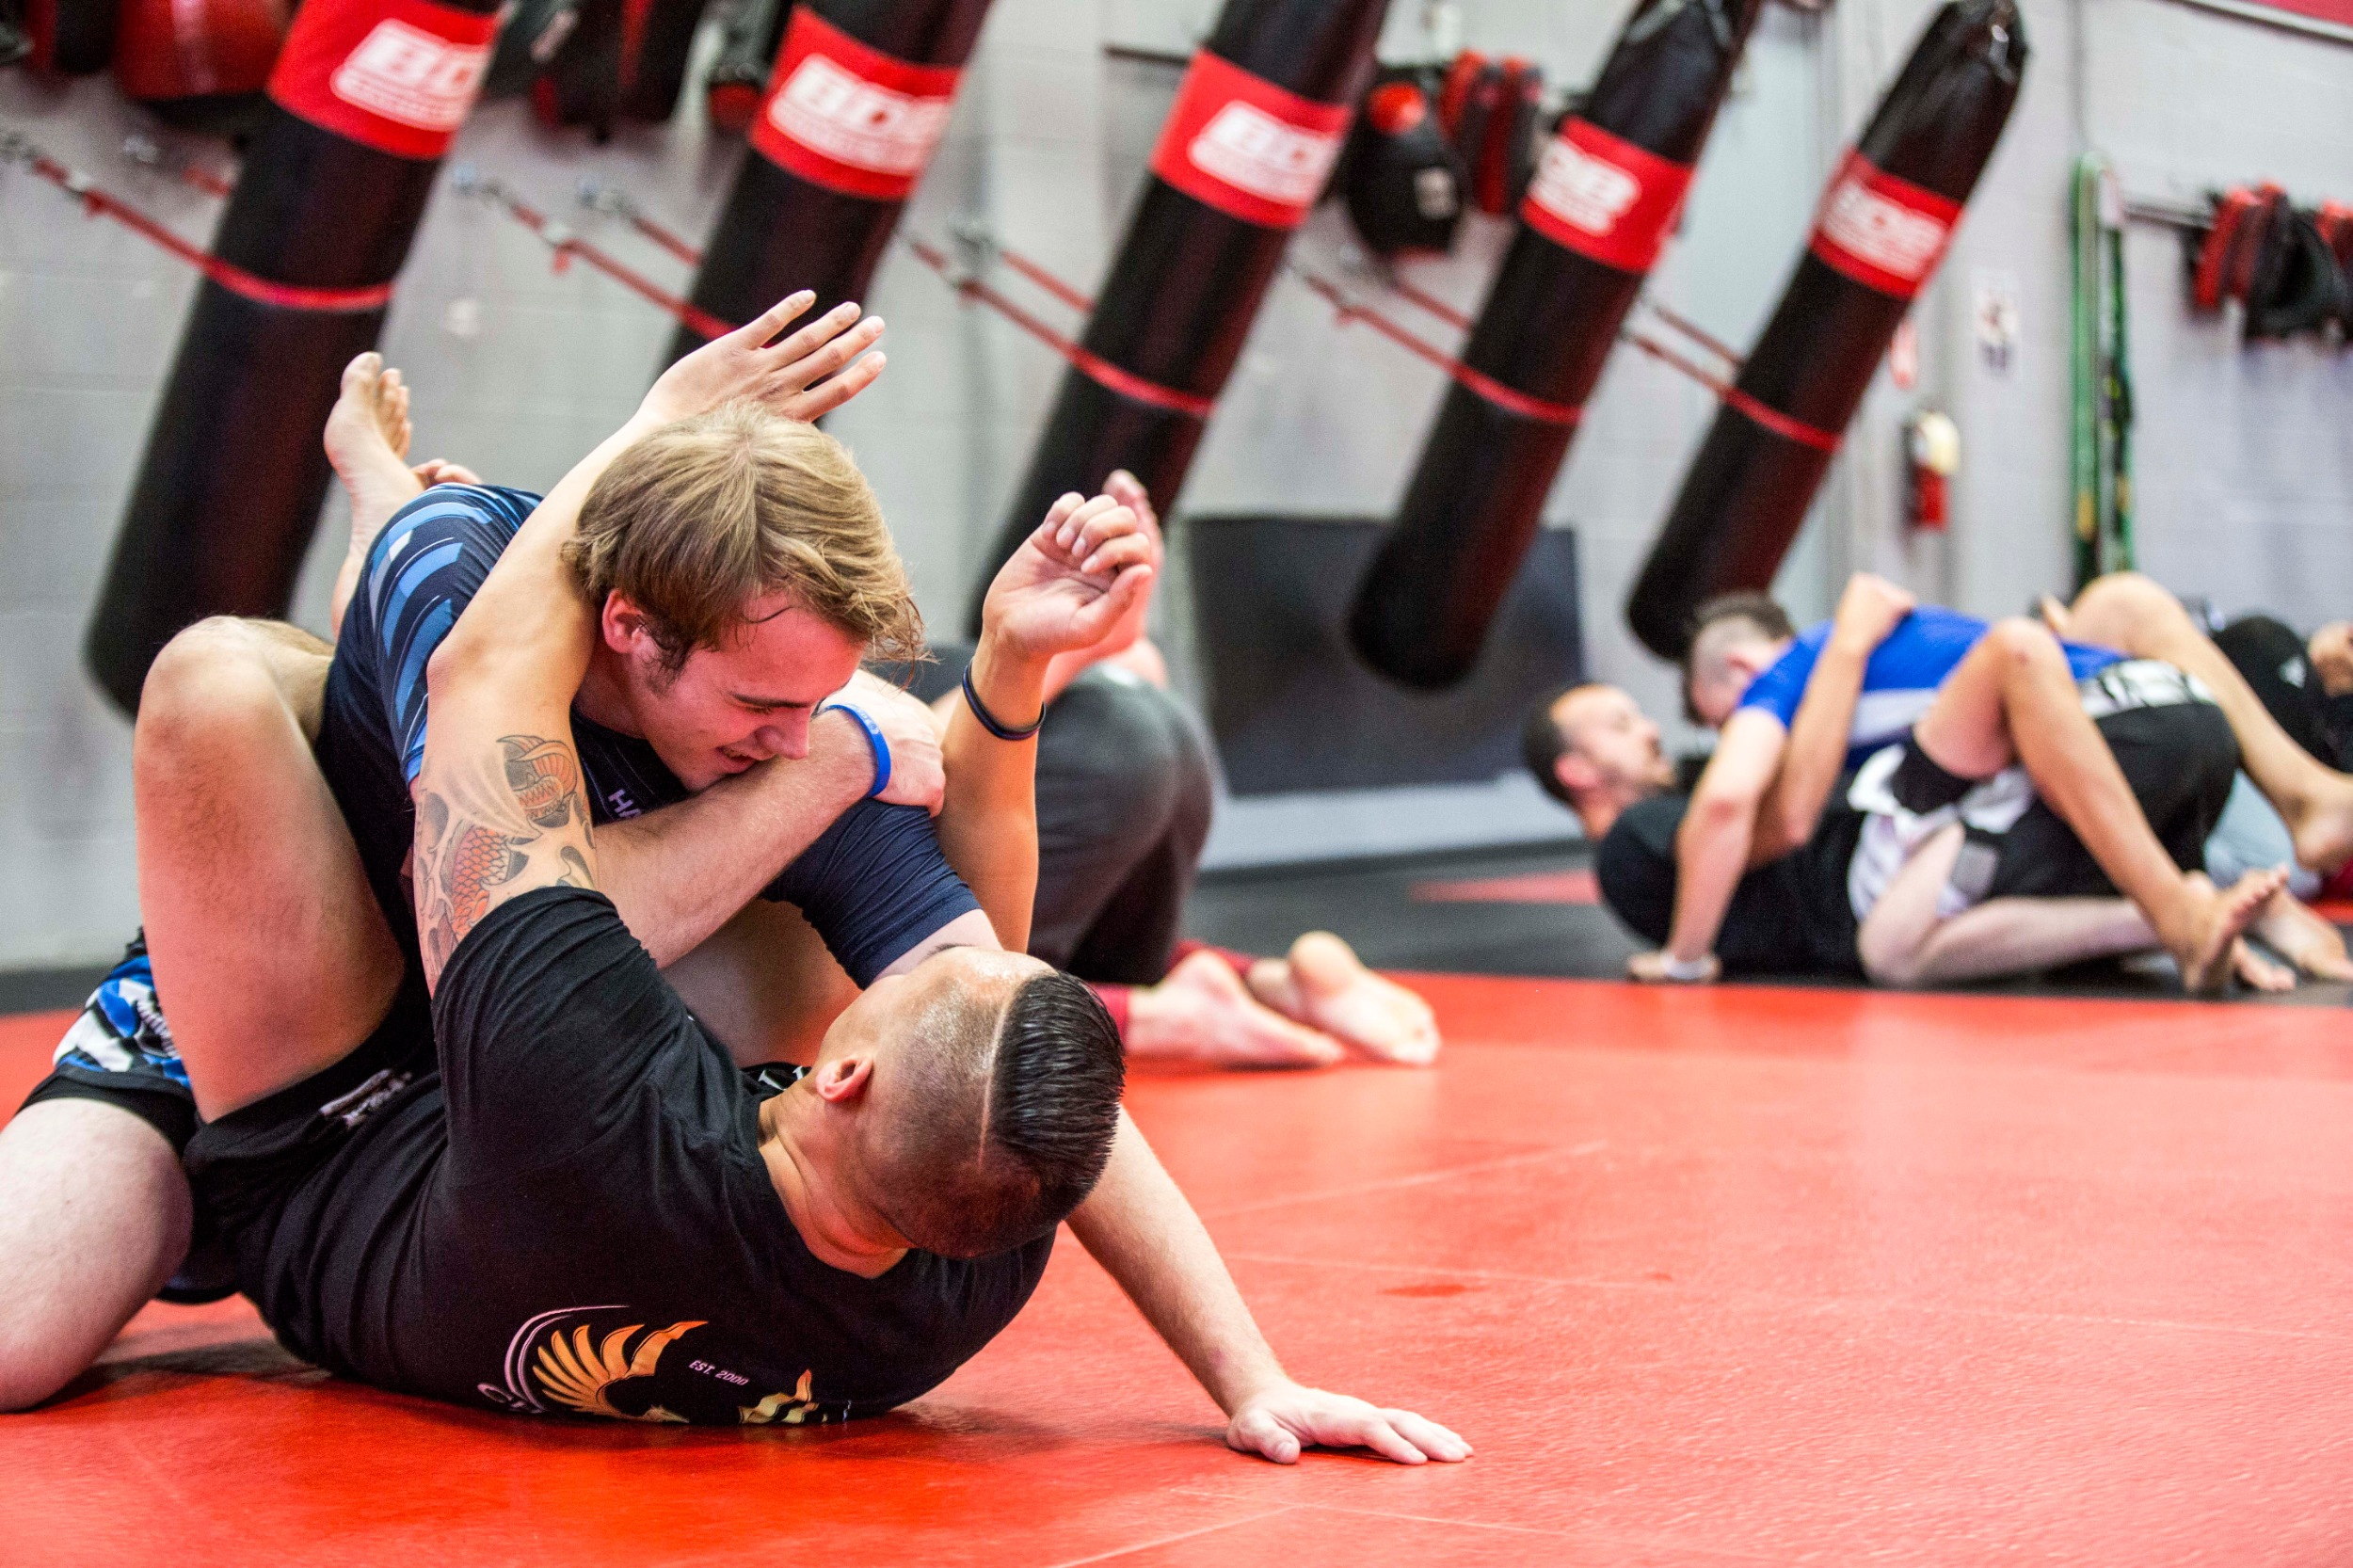 Want to Compete? Try Our Jiu-Jitsu Competition Class!